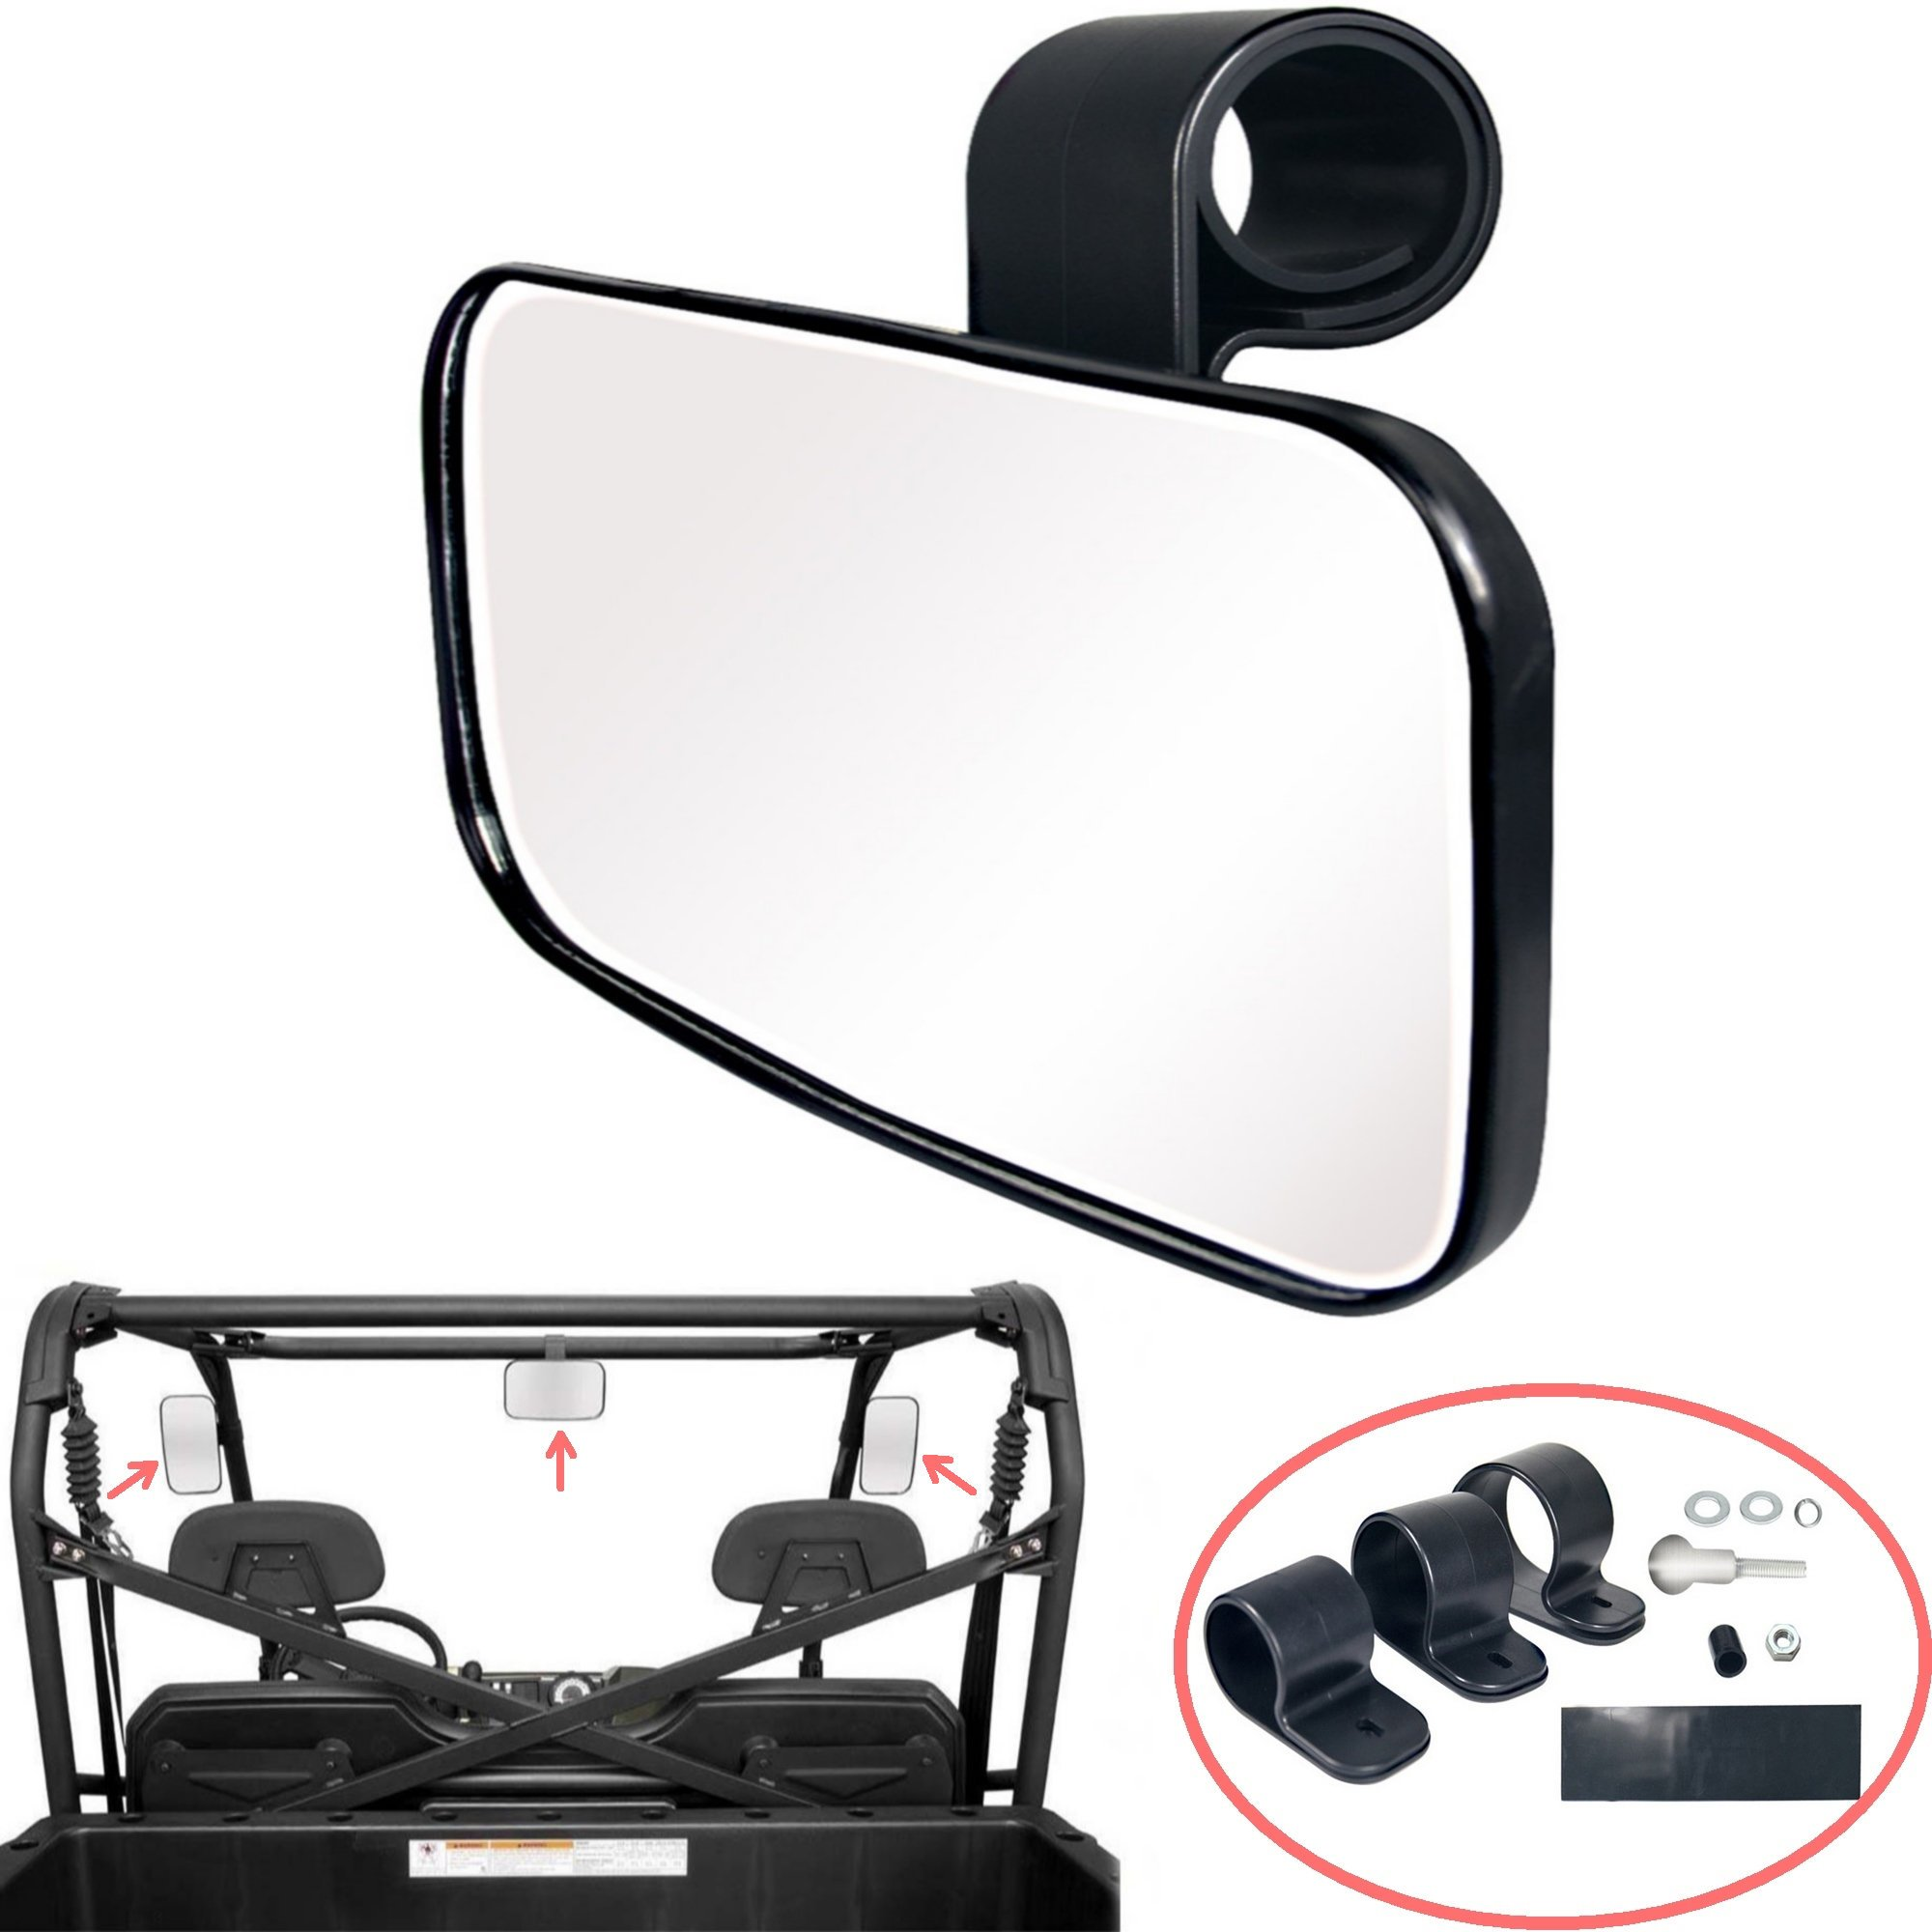 AVOMAR Adjustable UTV Clear Rear View Center Mirror, Center/Side Mirror High Impact ABS Housing with Shatter-Proof Tempered Glass Mirror